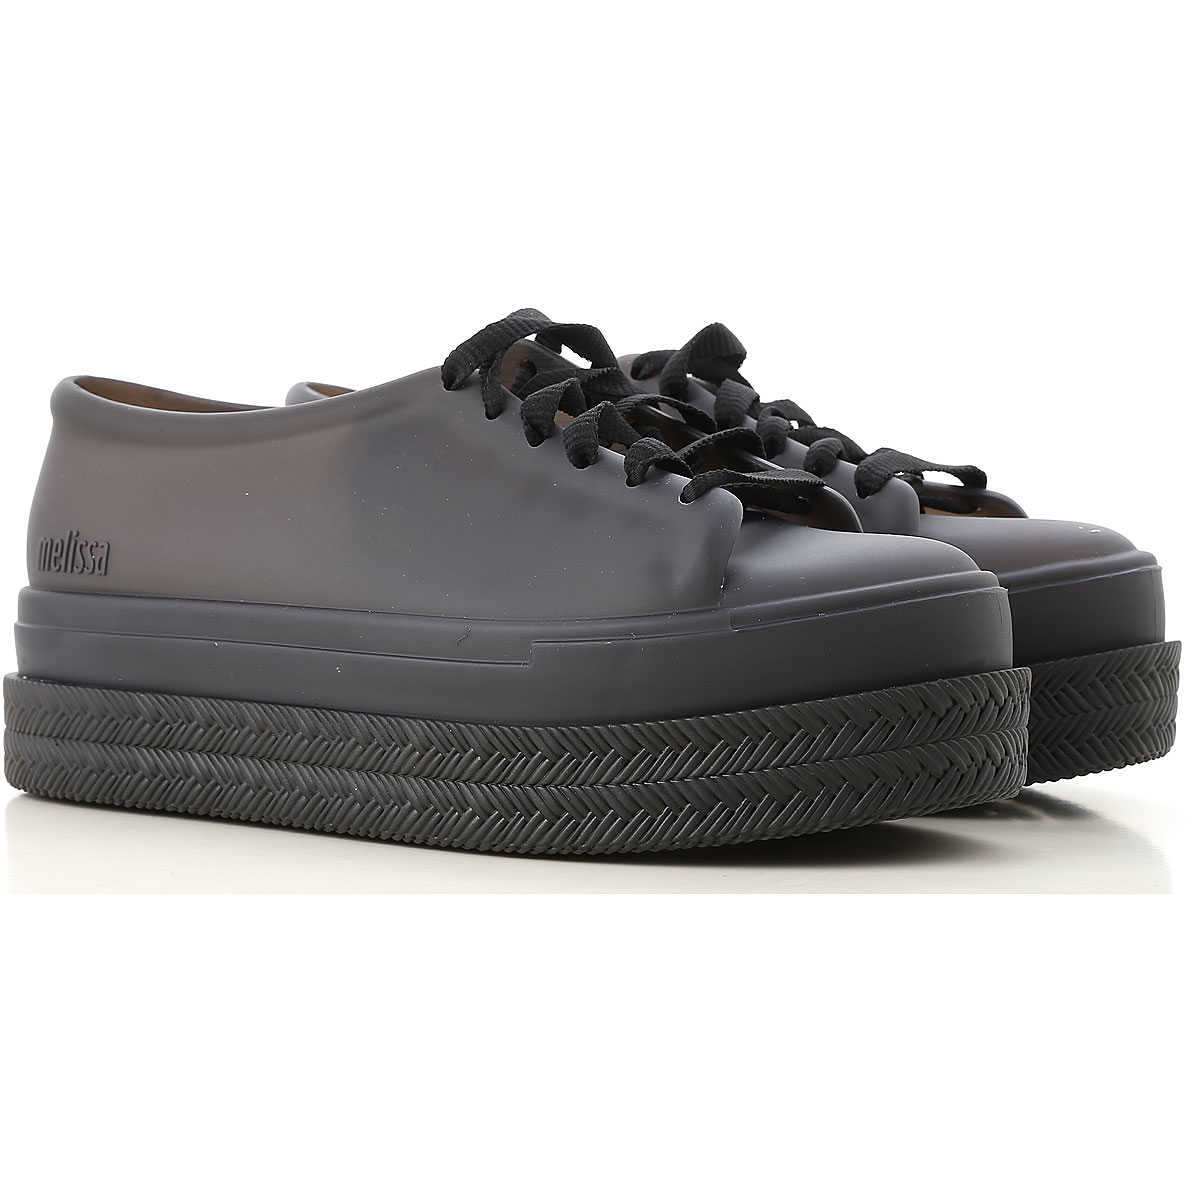 Melissa Wedges for Women On Sale Black DK - GOOFASH - Womens HOUSE SHOES